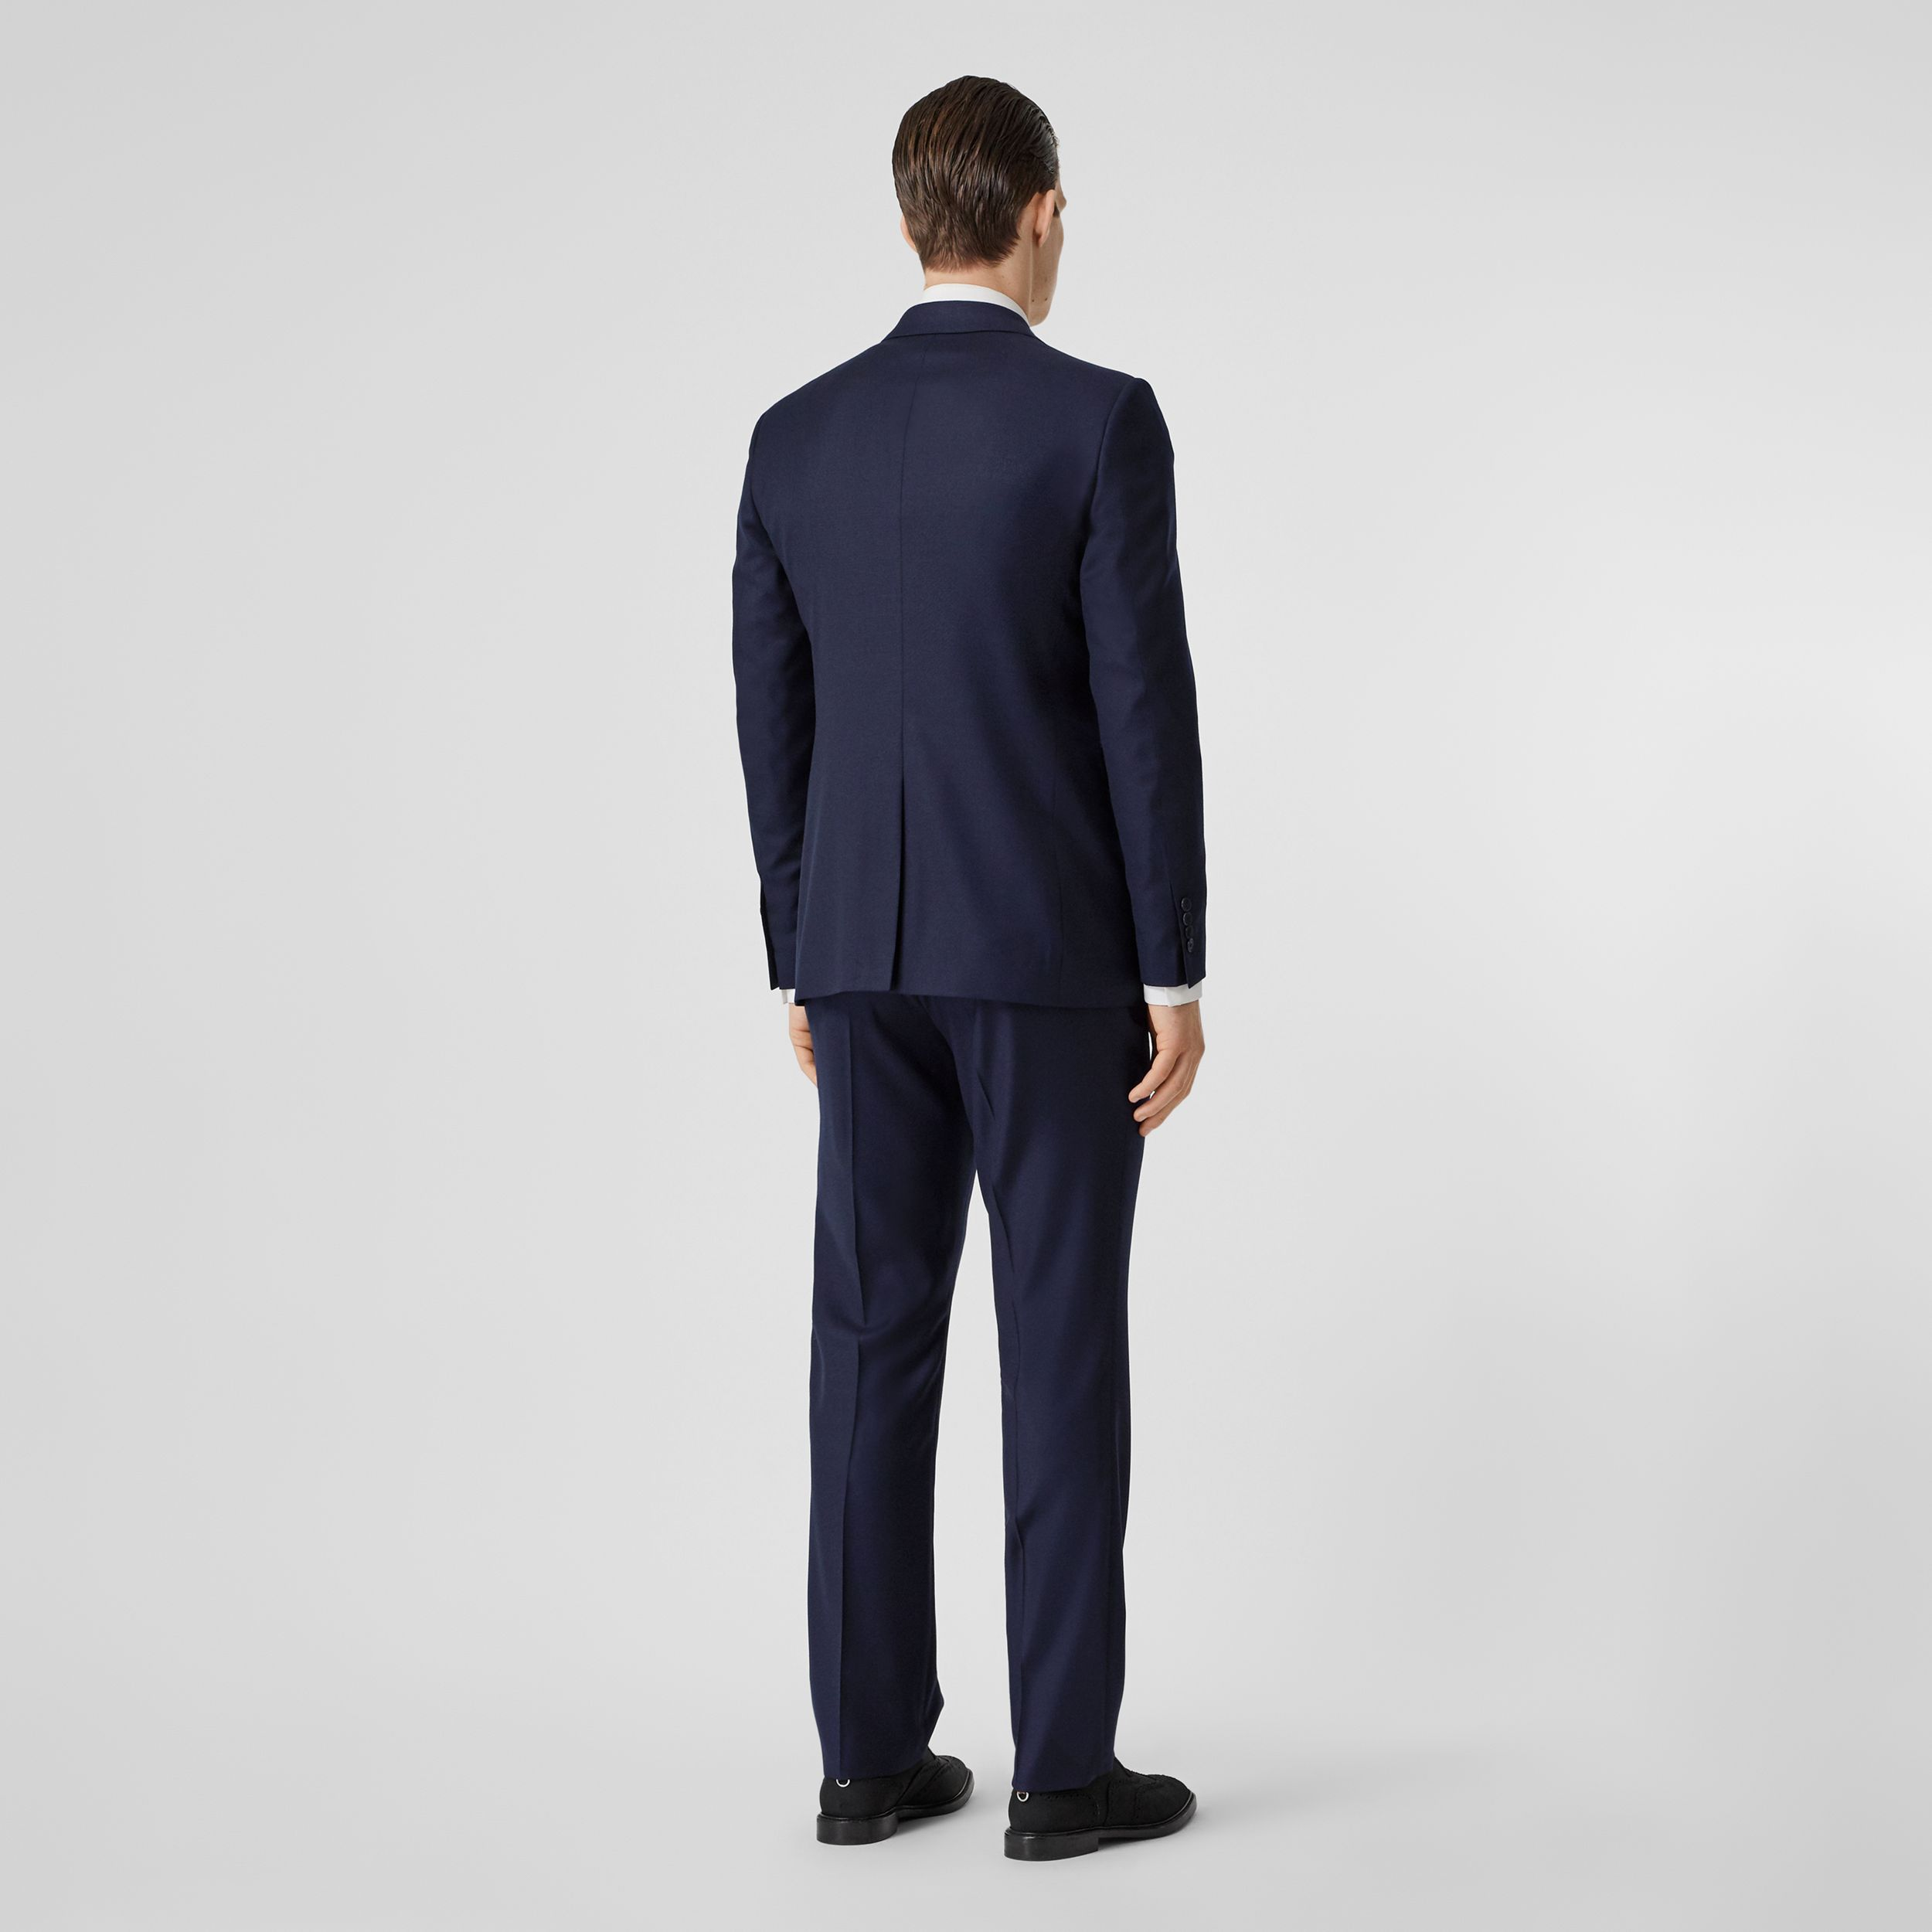 Classic Fit Wool Suit in Navy - Men | Burberry - 3